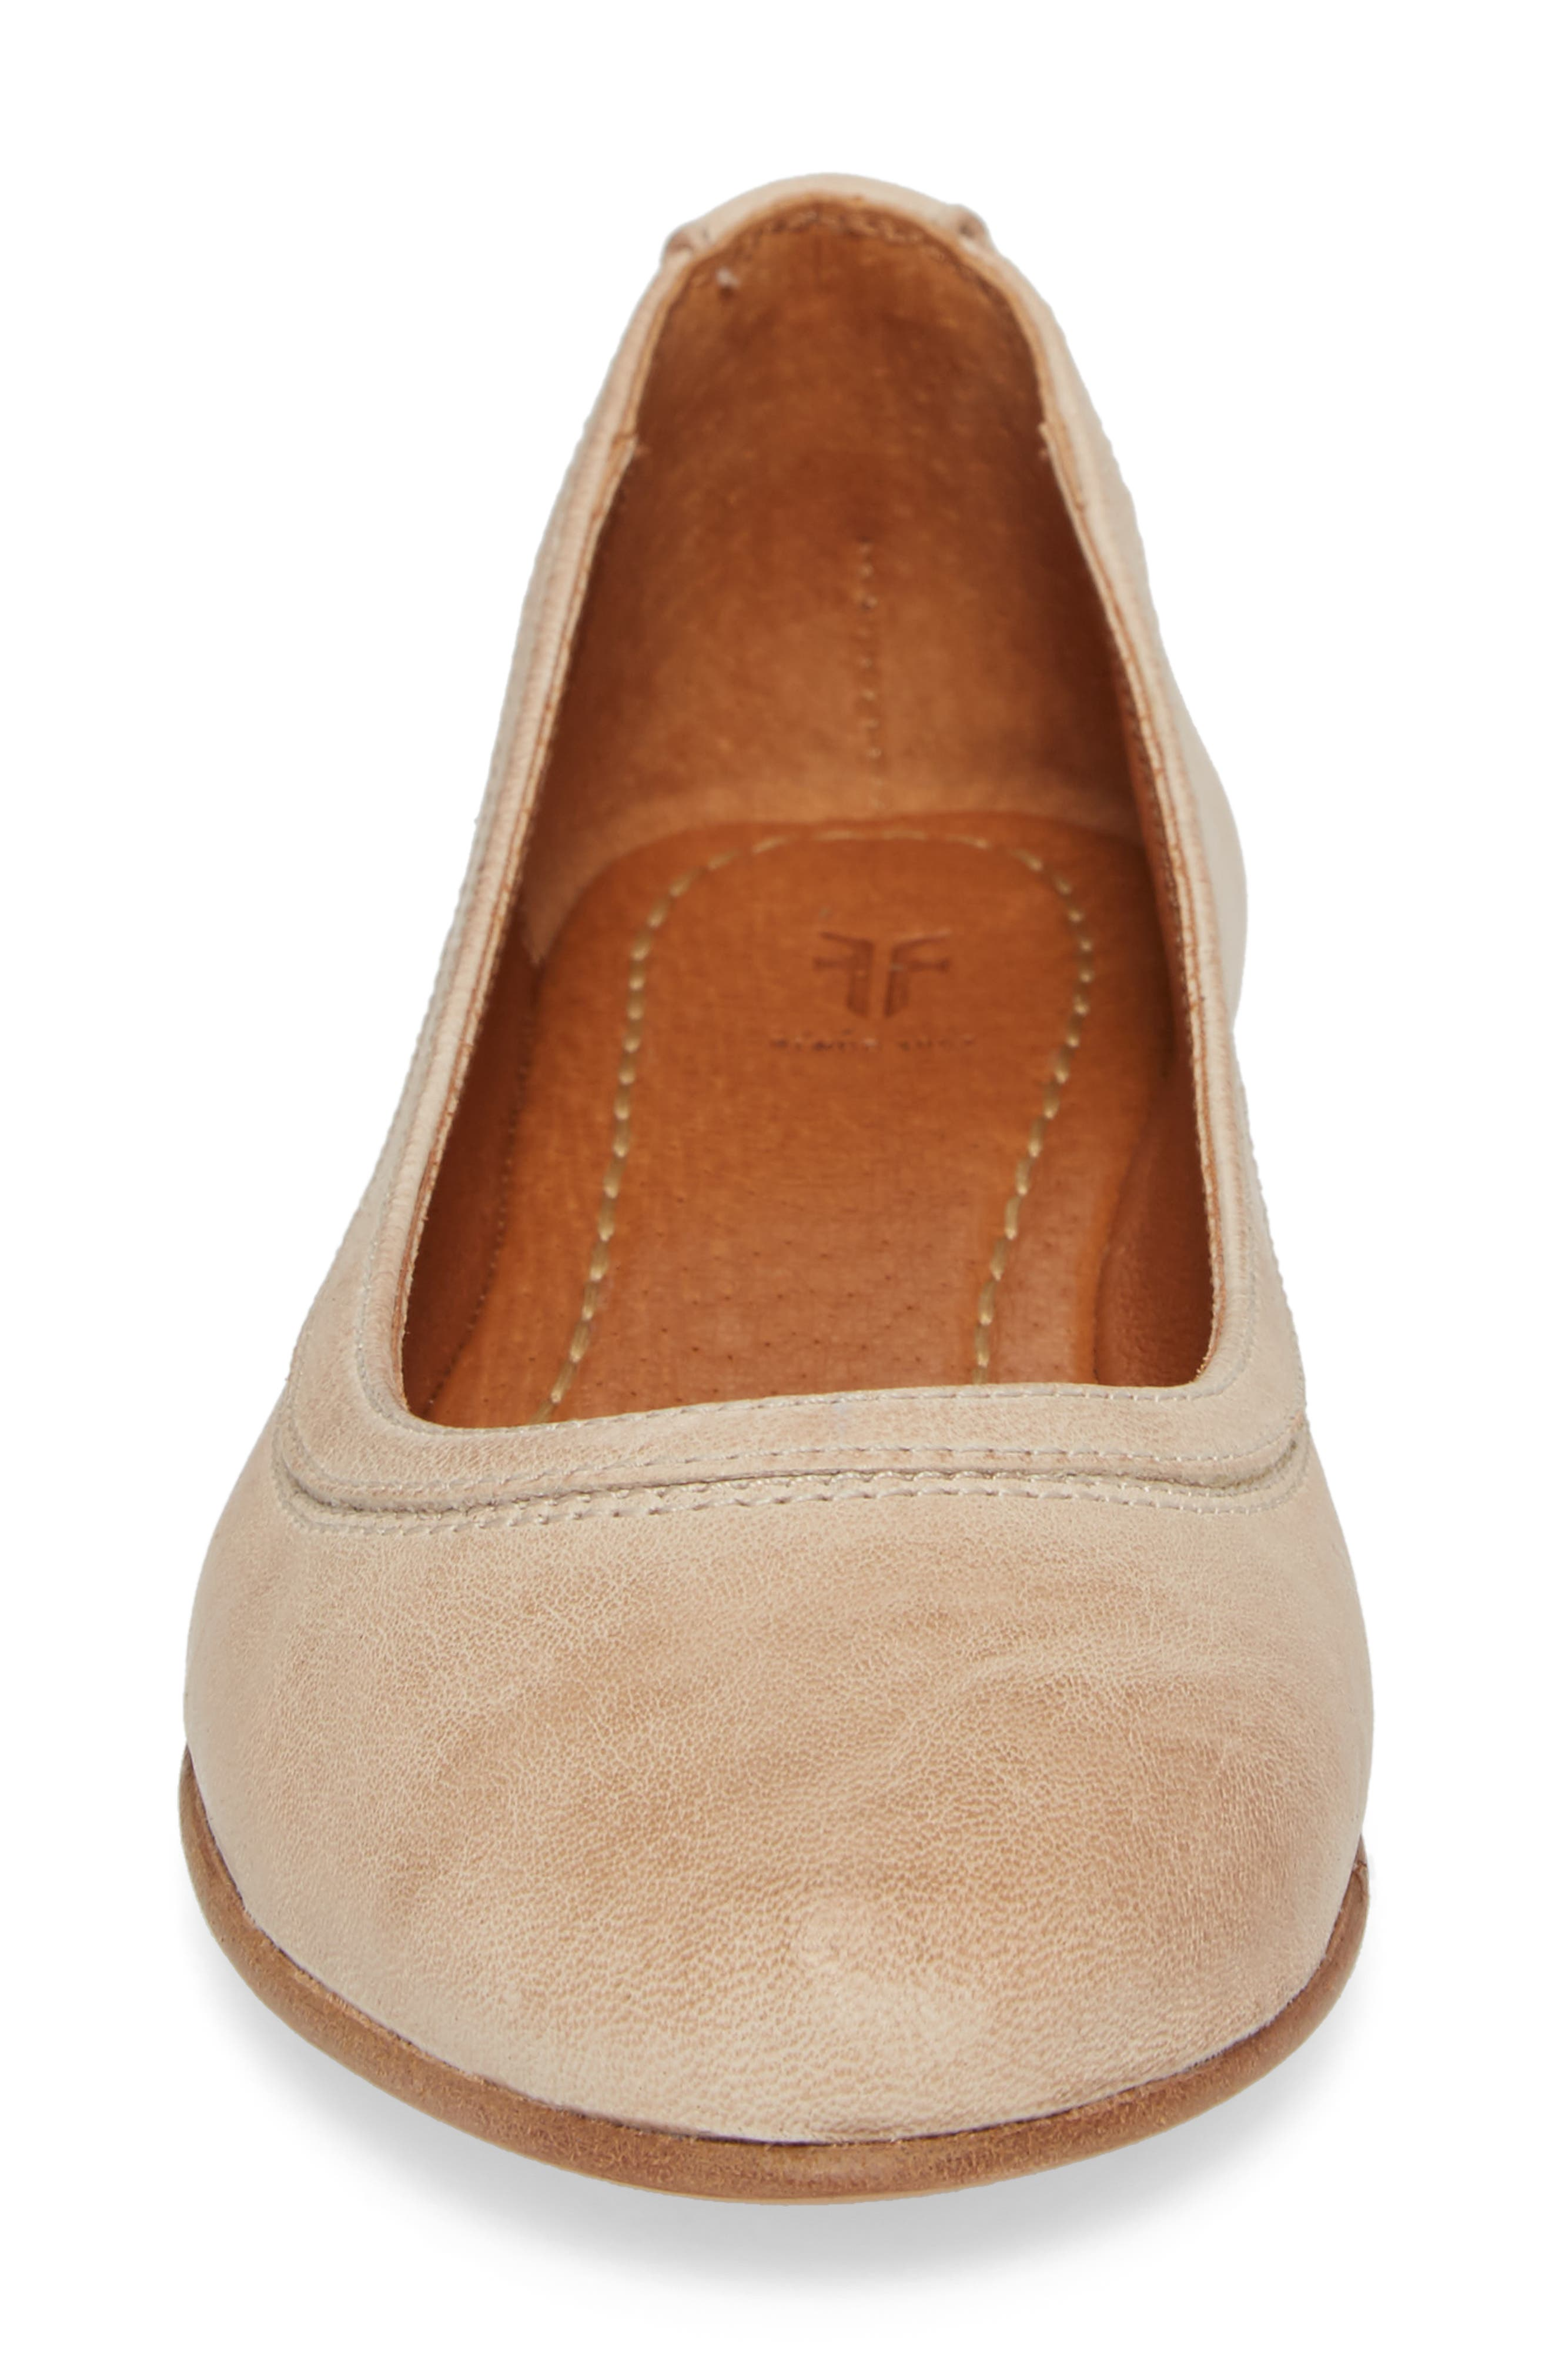 'Carson' Ballet Flat,                             Alternate thumbnail 5, color,                             CREAM LEATHER